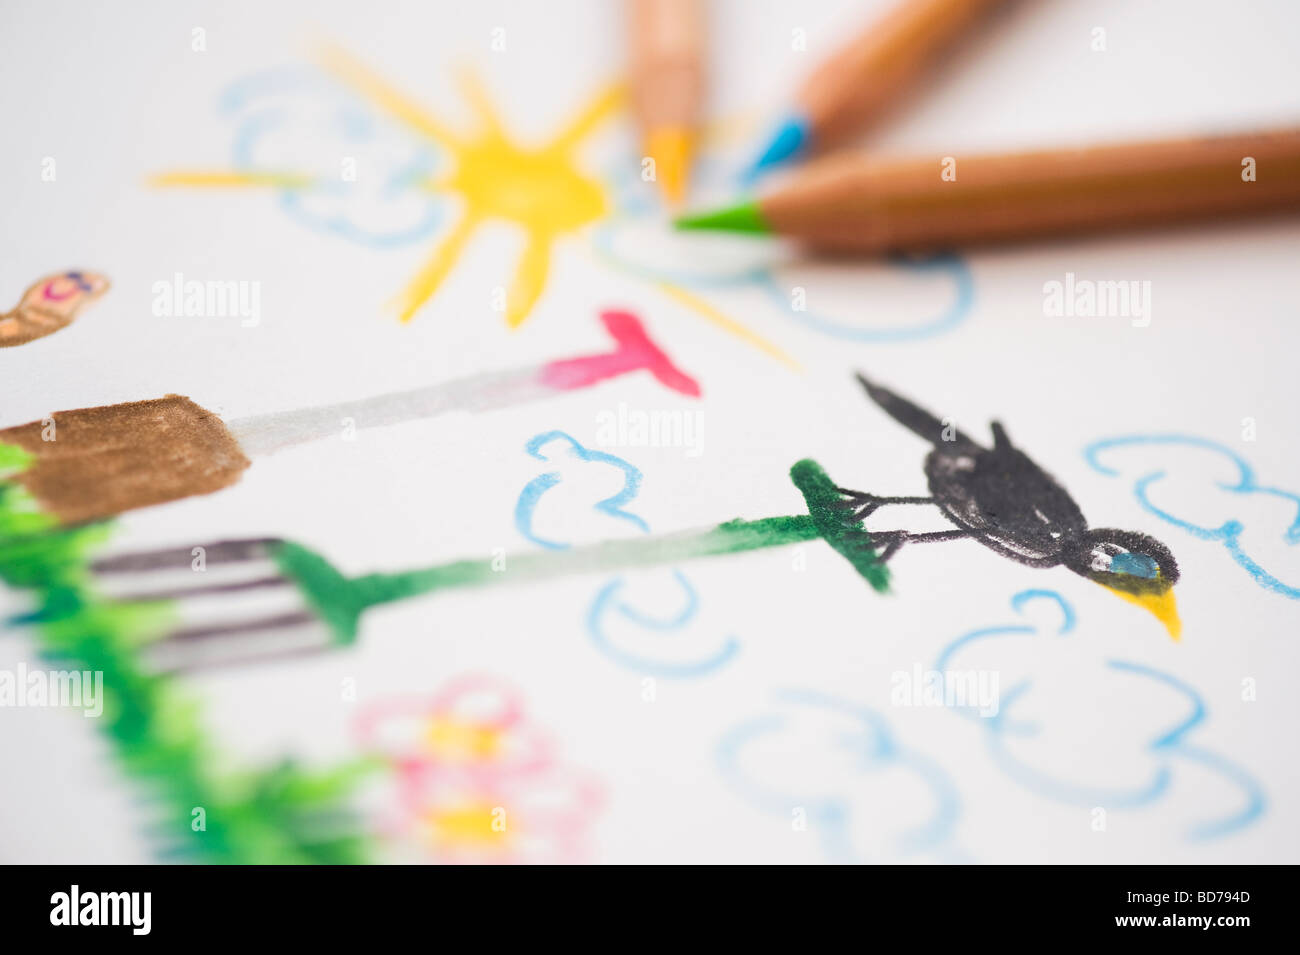 Garden scene with garden tools, child's drawing with coloured pencils - Stock Image